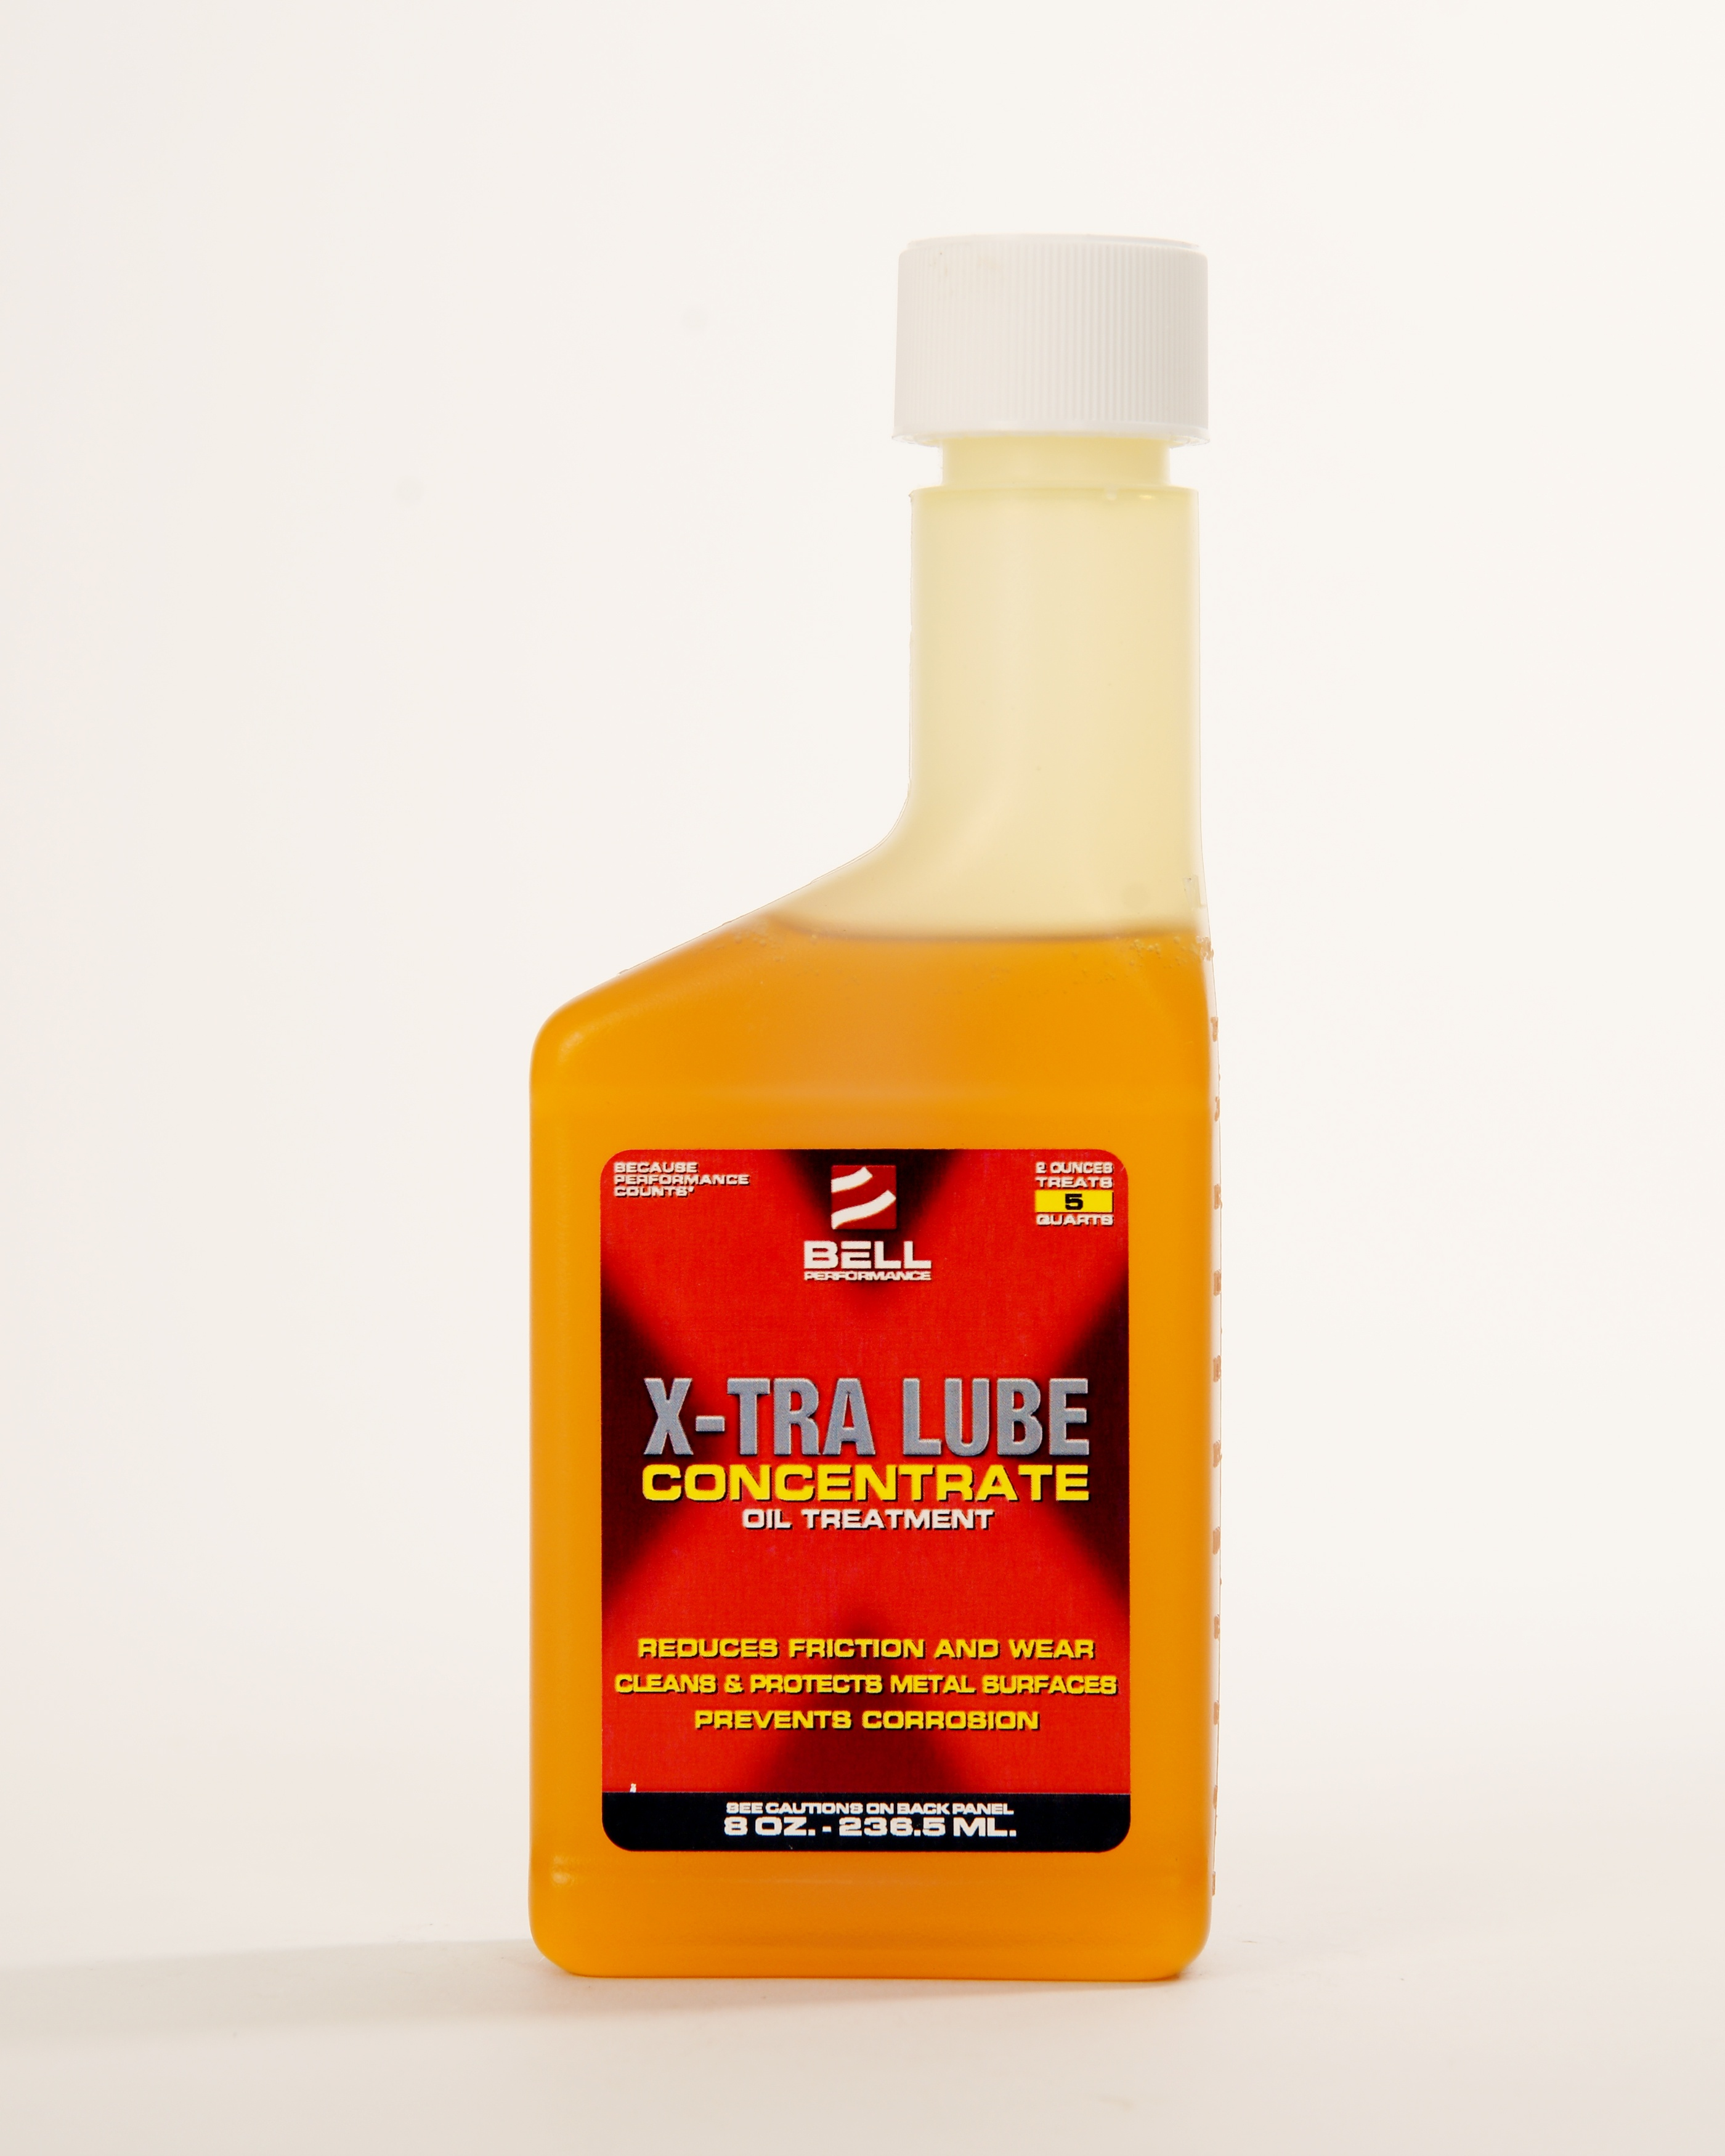 X-TRA LUBE CONCENTRATE 8 OZ